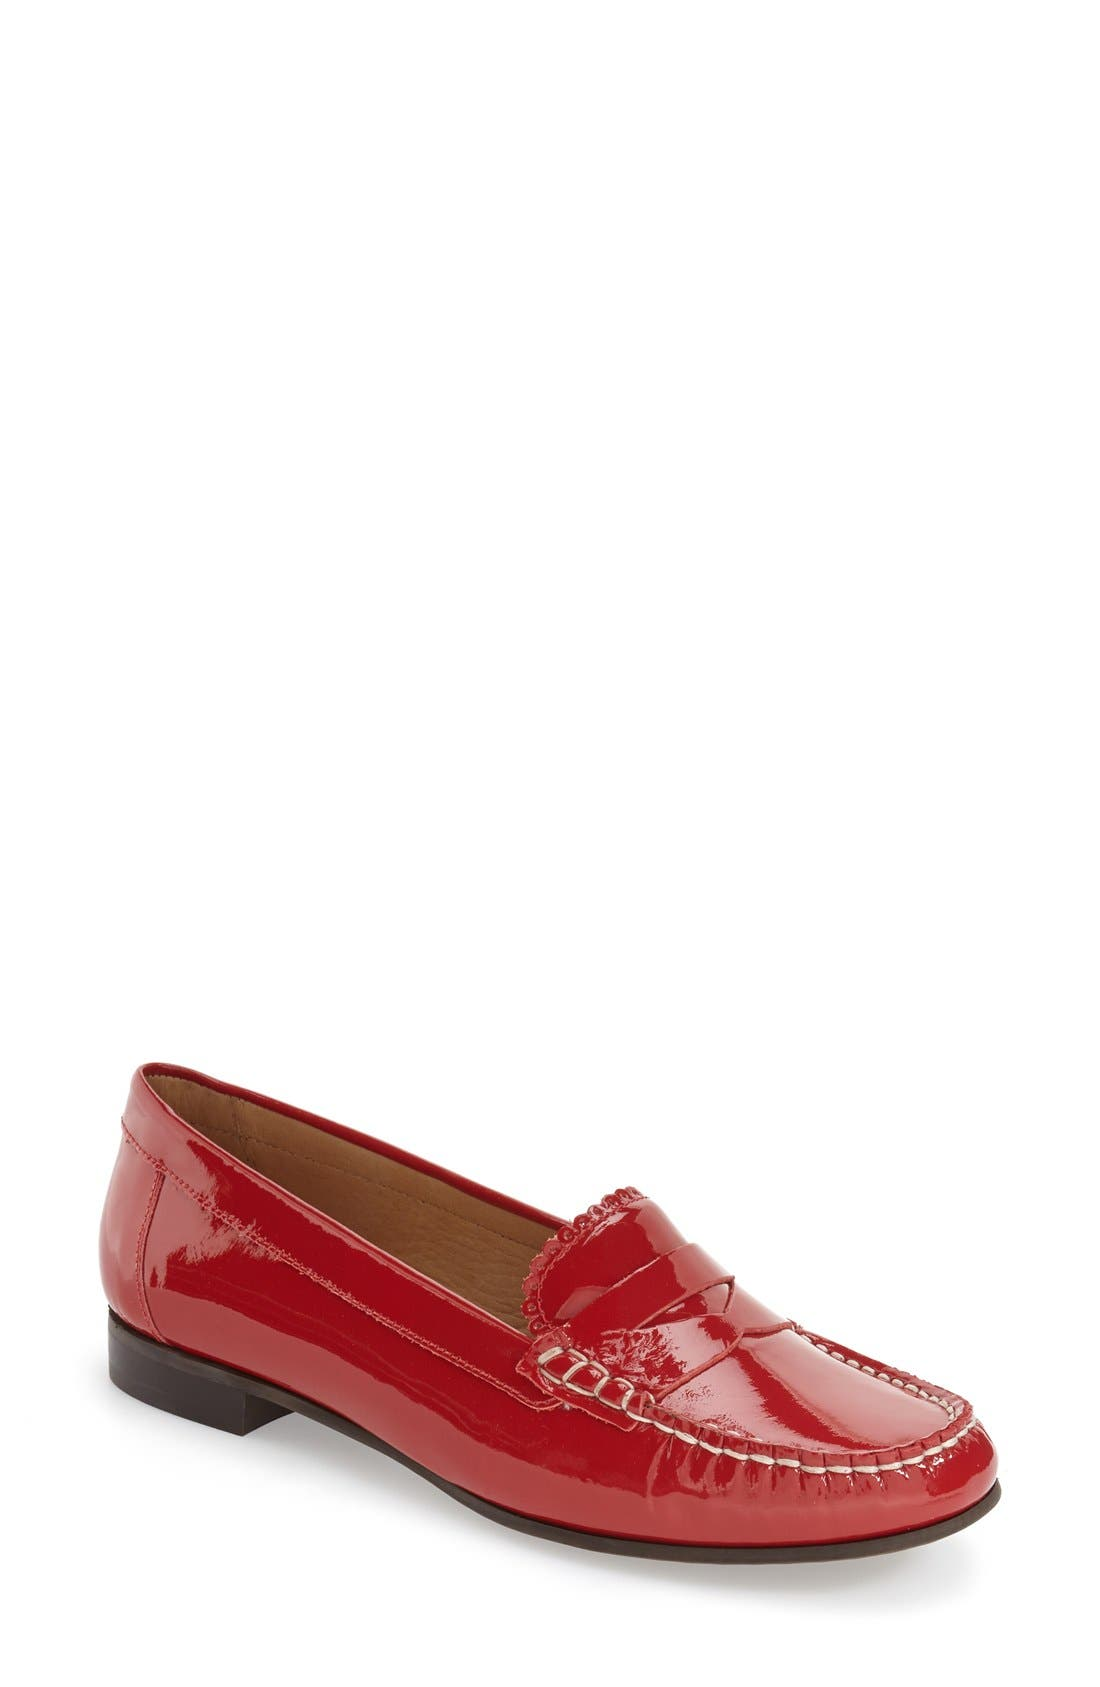 JACK ROGERS Quinn Leather Loafer